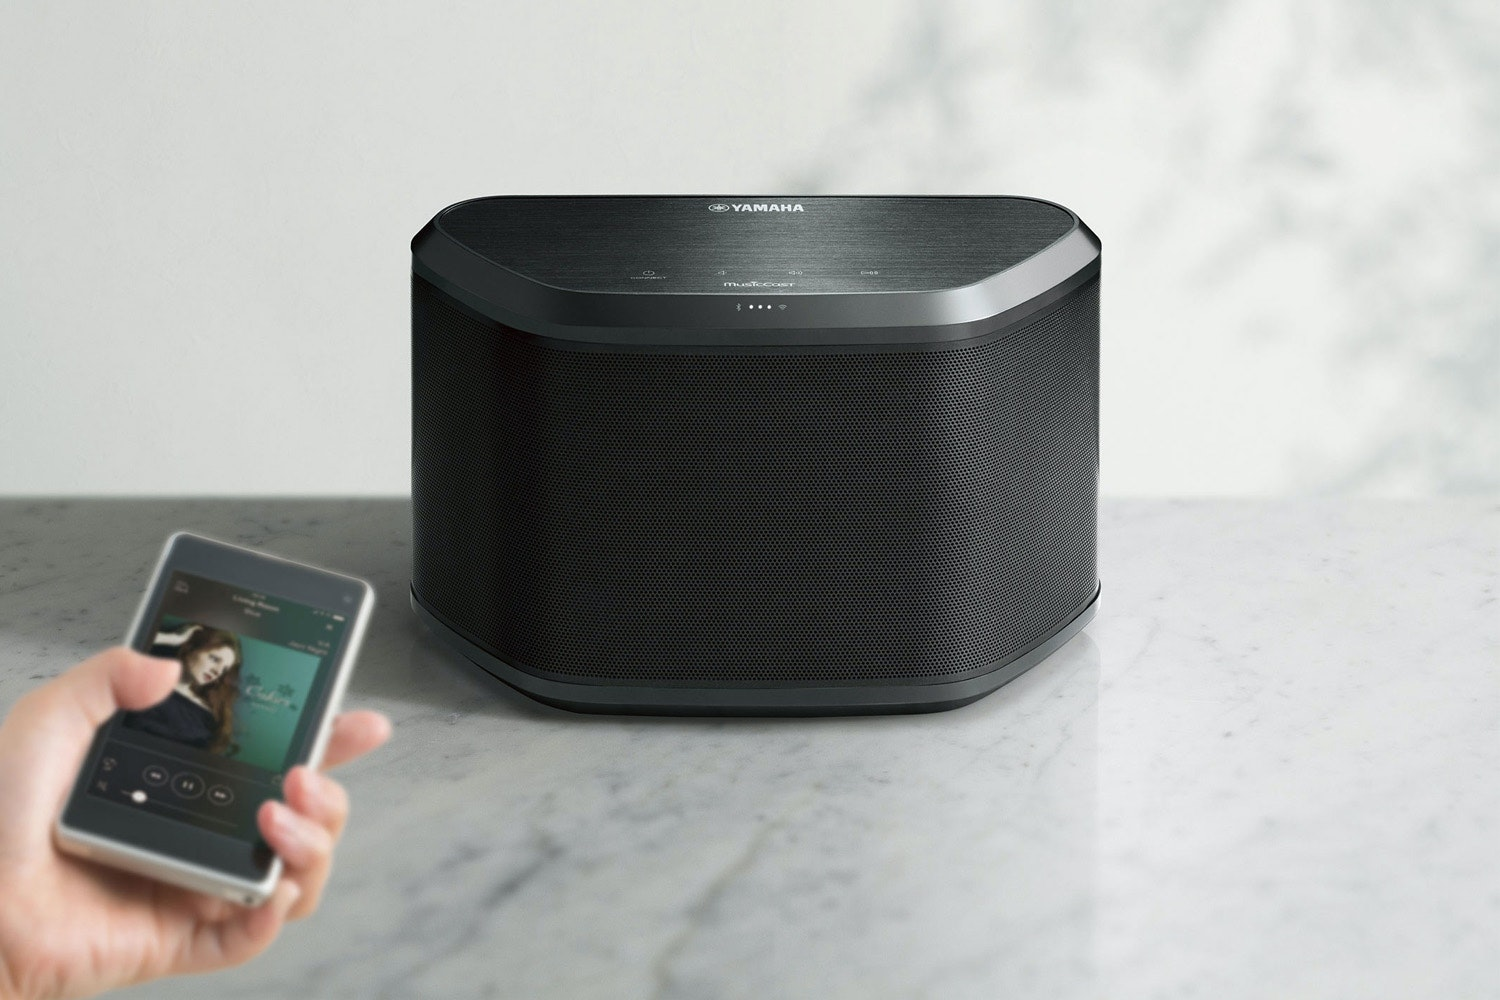 Yamaha Wireless Speaker | WX-030